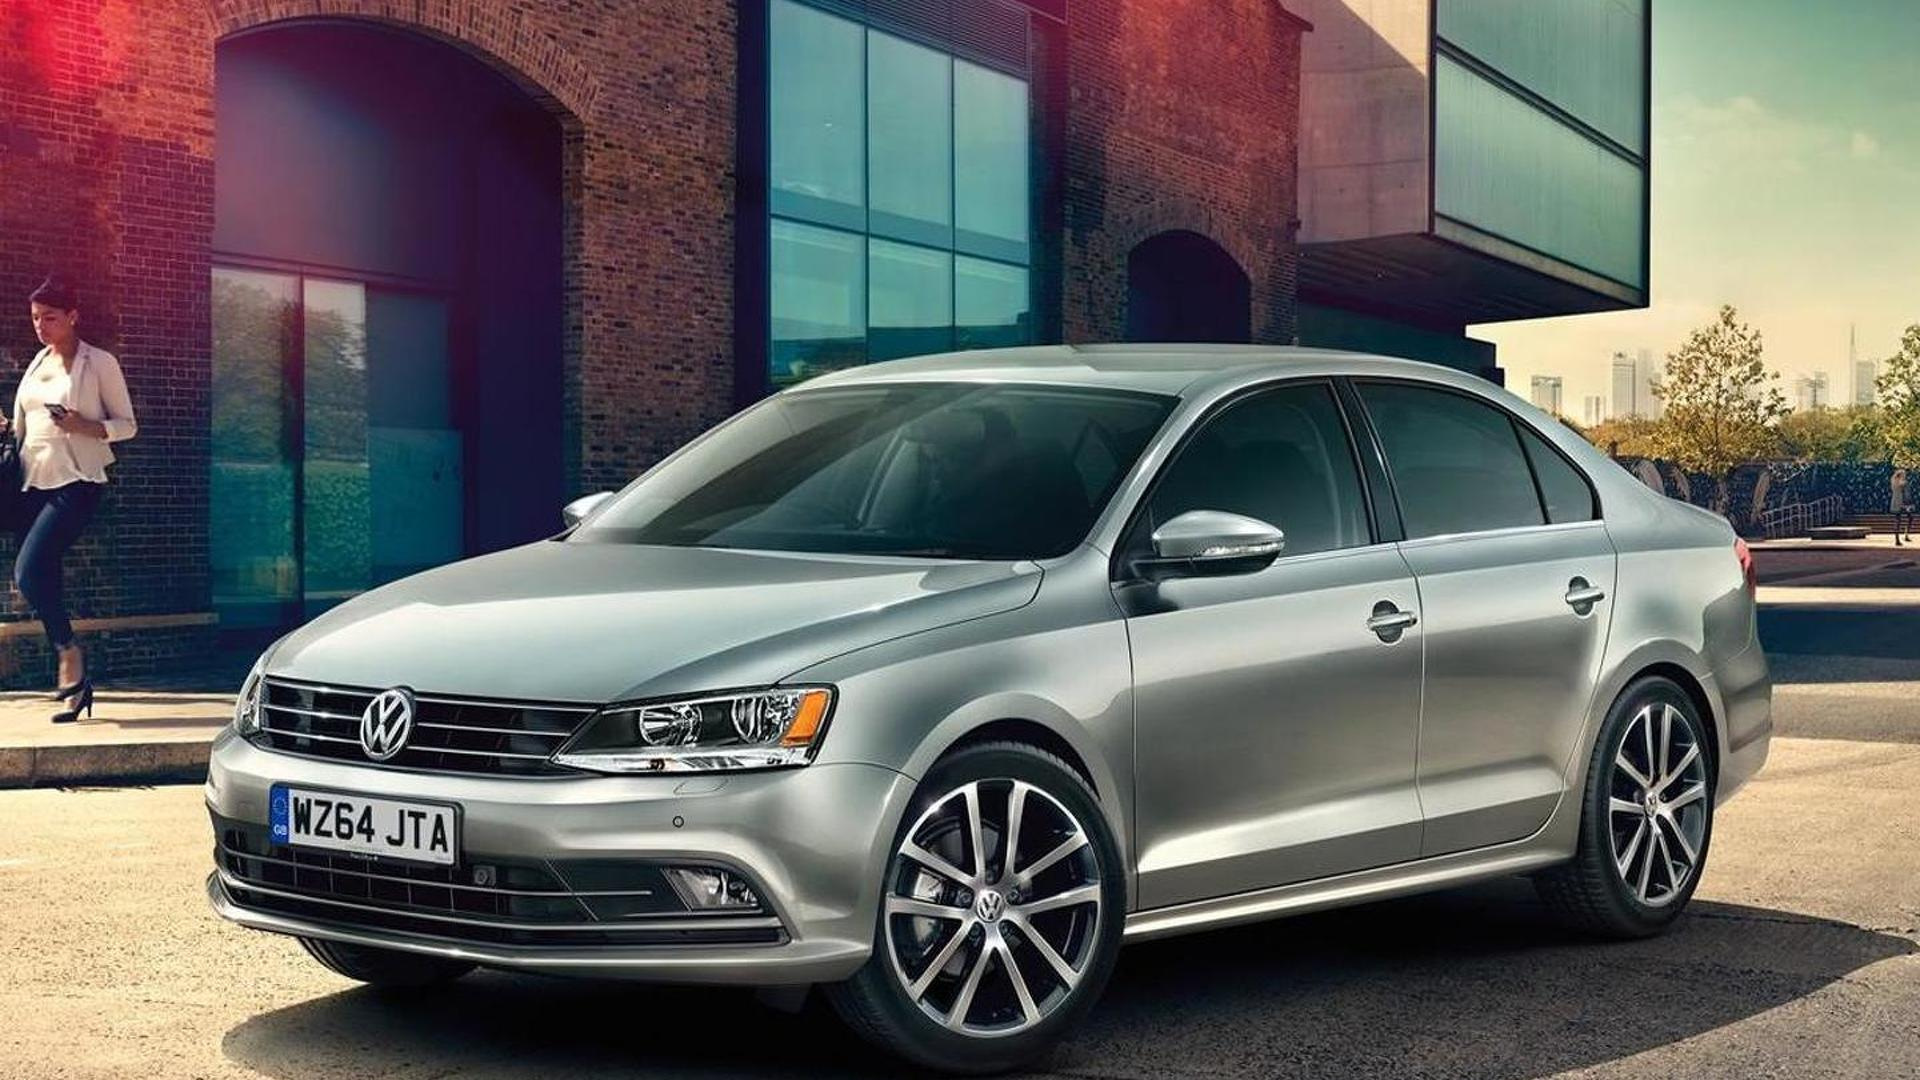 cabin volkswagen india changes facelift launched design has features news recent minor launches new the price in jetta rs lakh launch too at